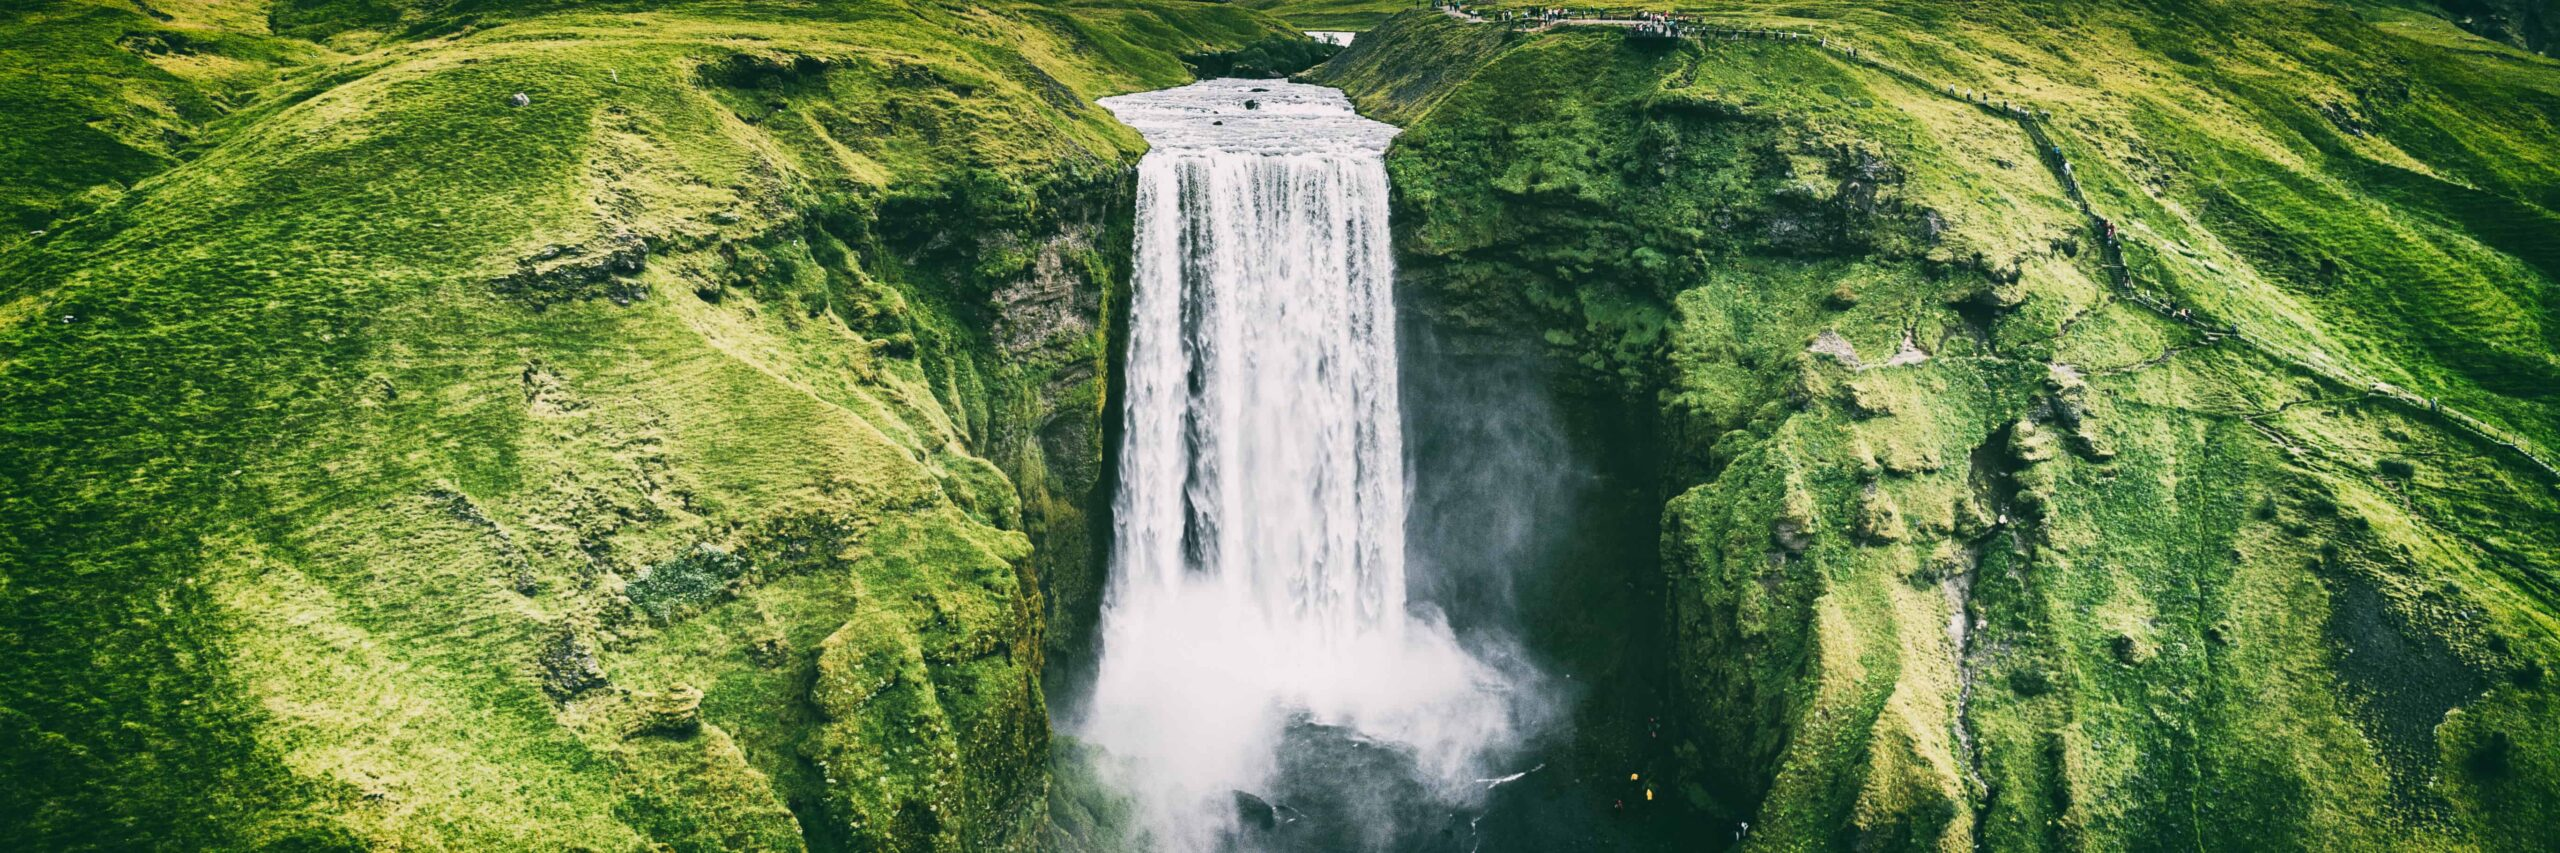 Helicopter view at Skógafoss waterfall in Iceland